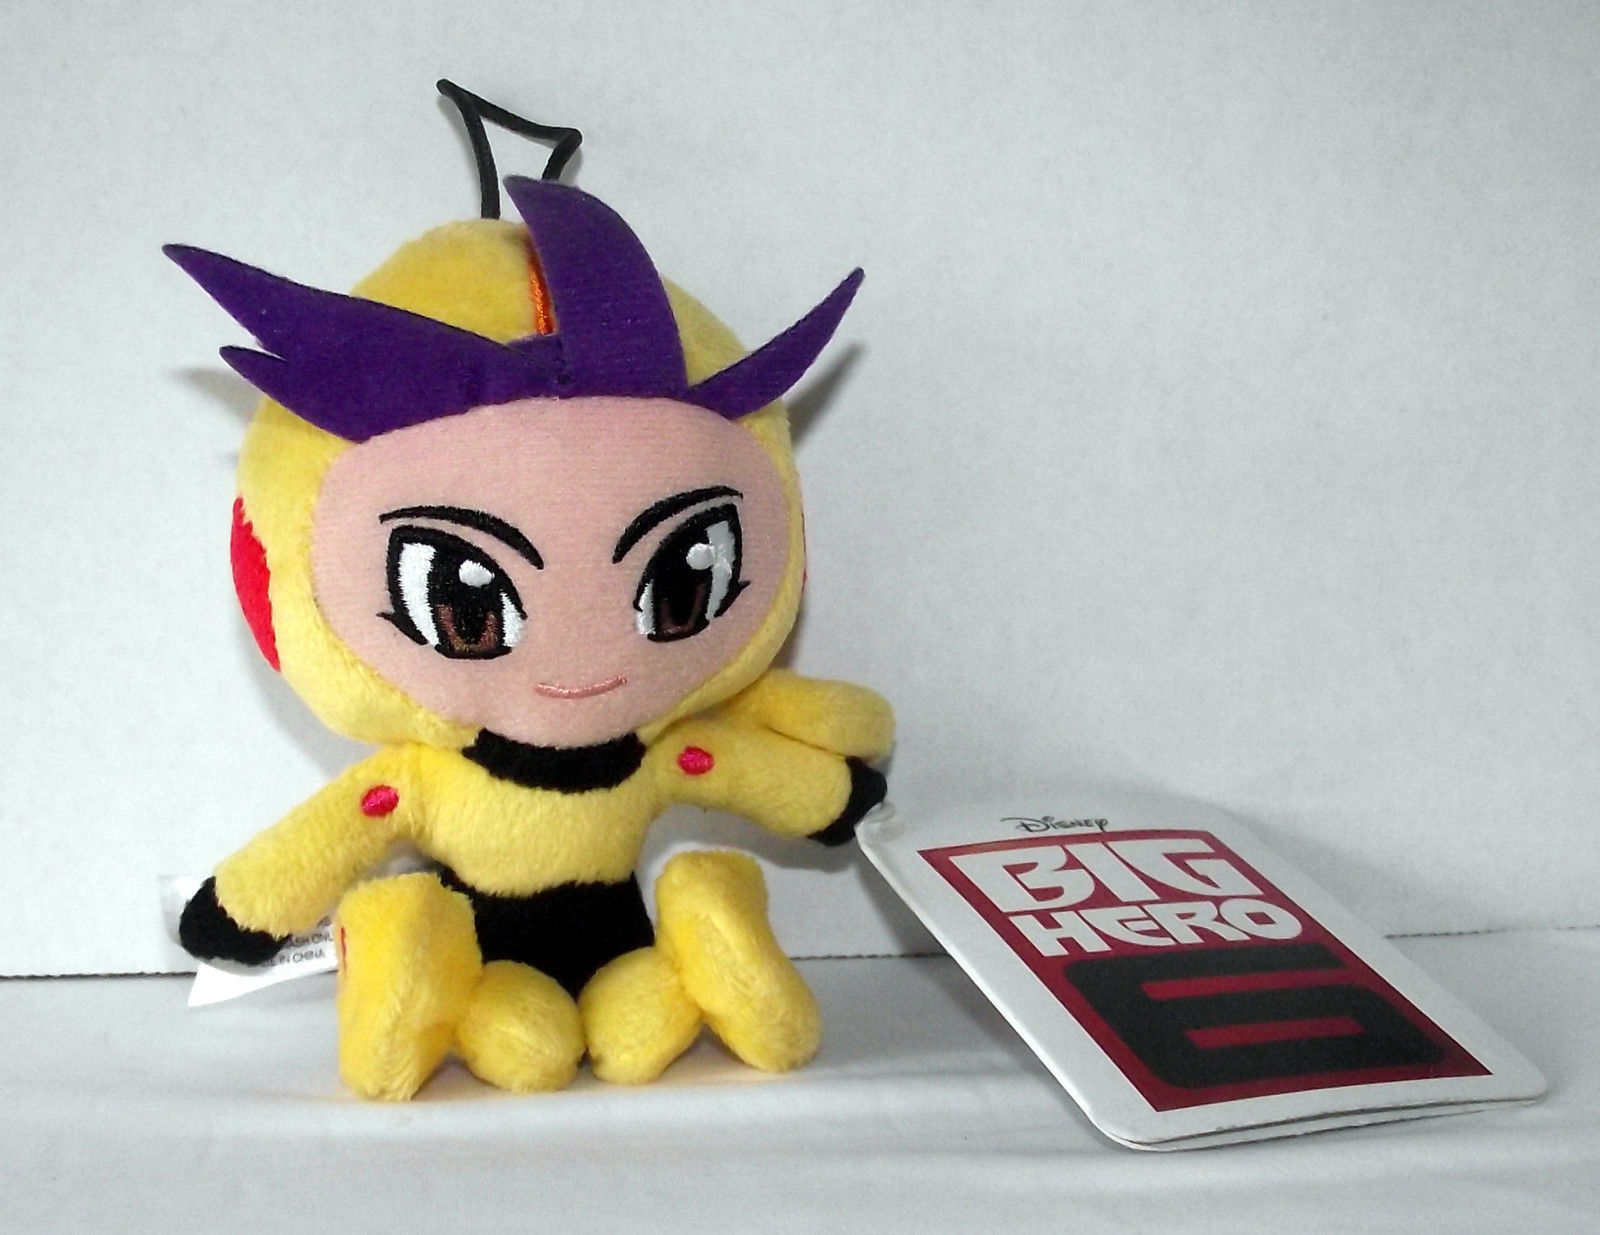 Go Go Tomago Plush 38628 Disney Big Hero 6 Stuffed Toy Ornament Doll Yellow NWT